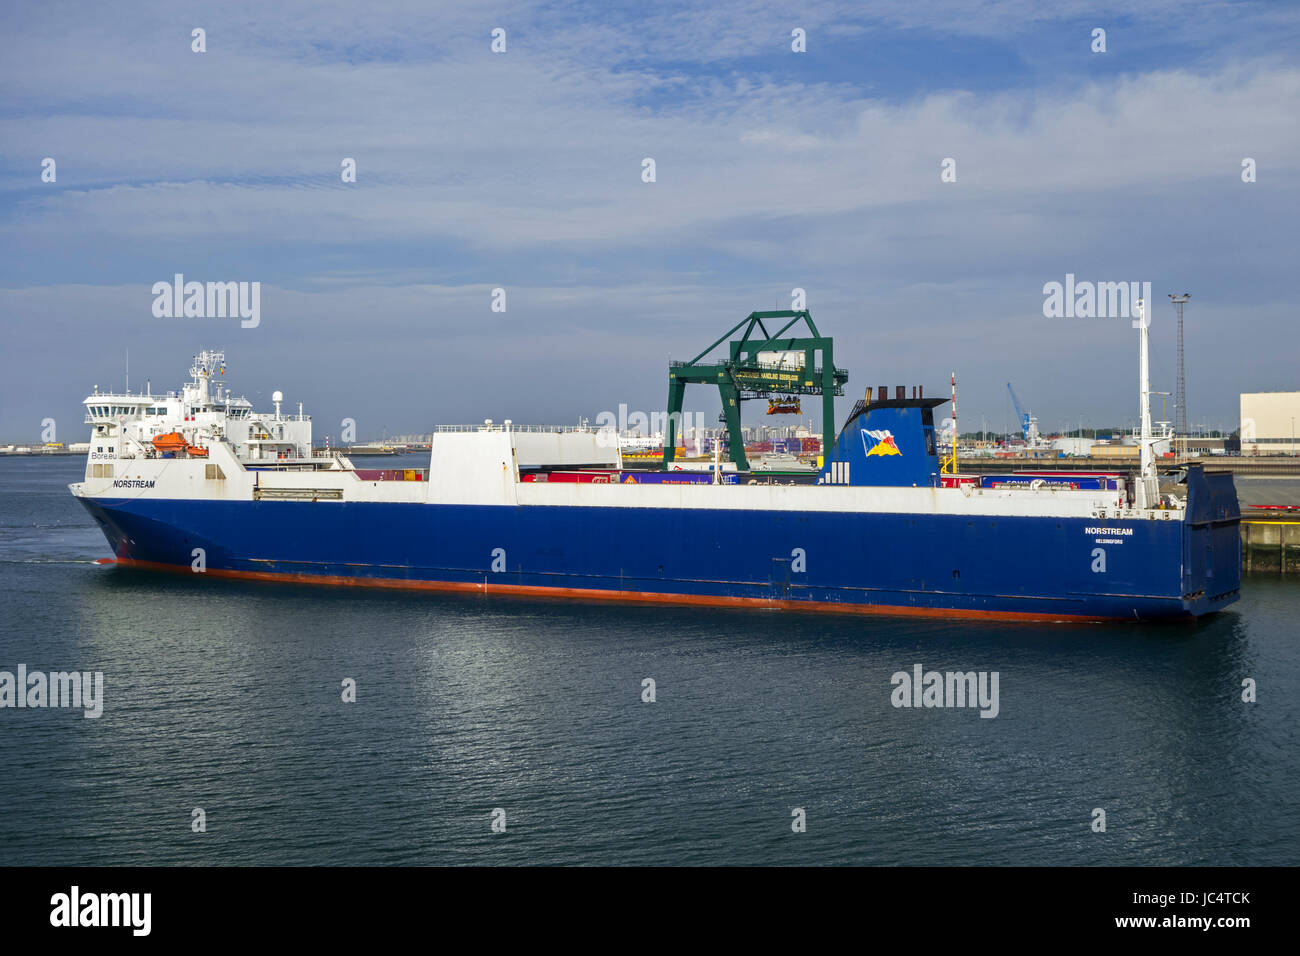 Ms norstream freight ferry ro ro cargo ship in the port of stock photo 145165795 alamy - Where is zeebrugge ferry port ...